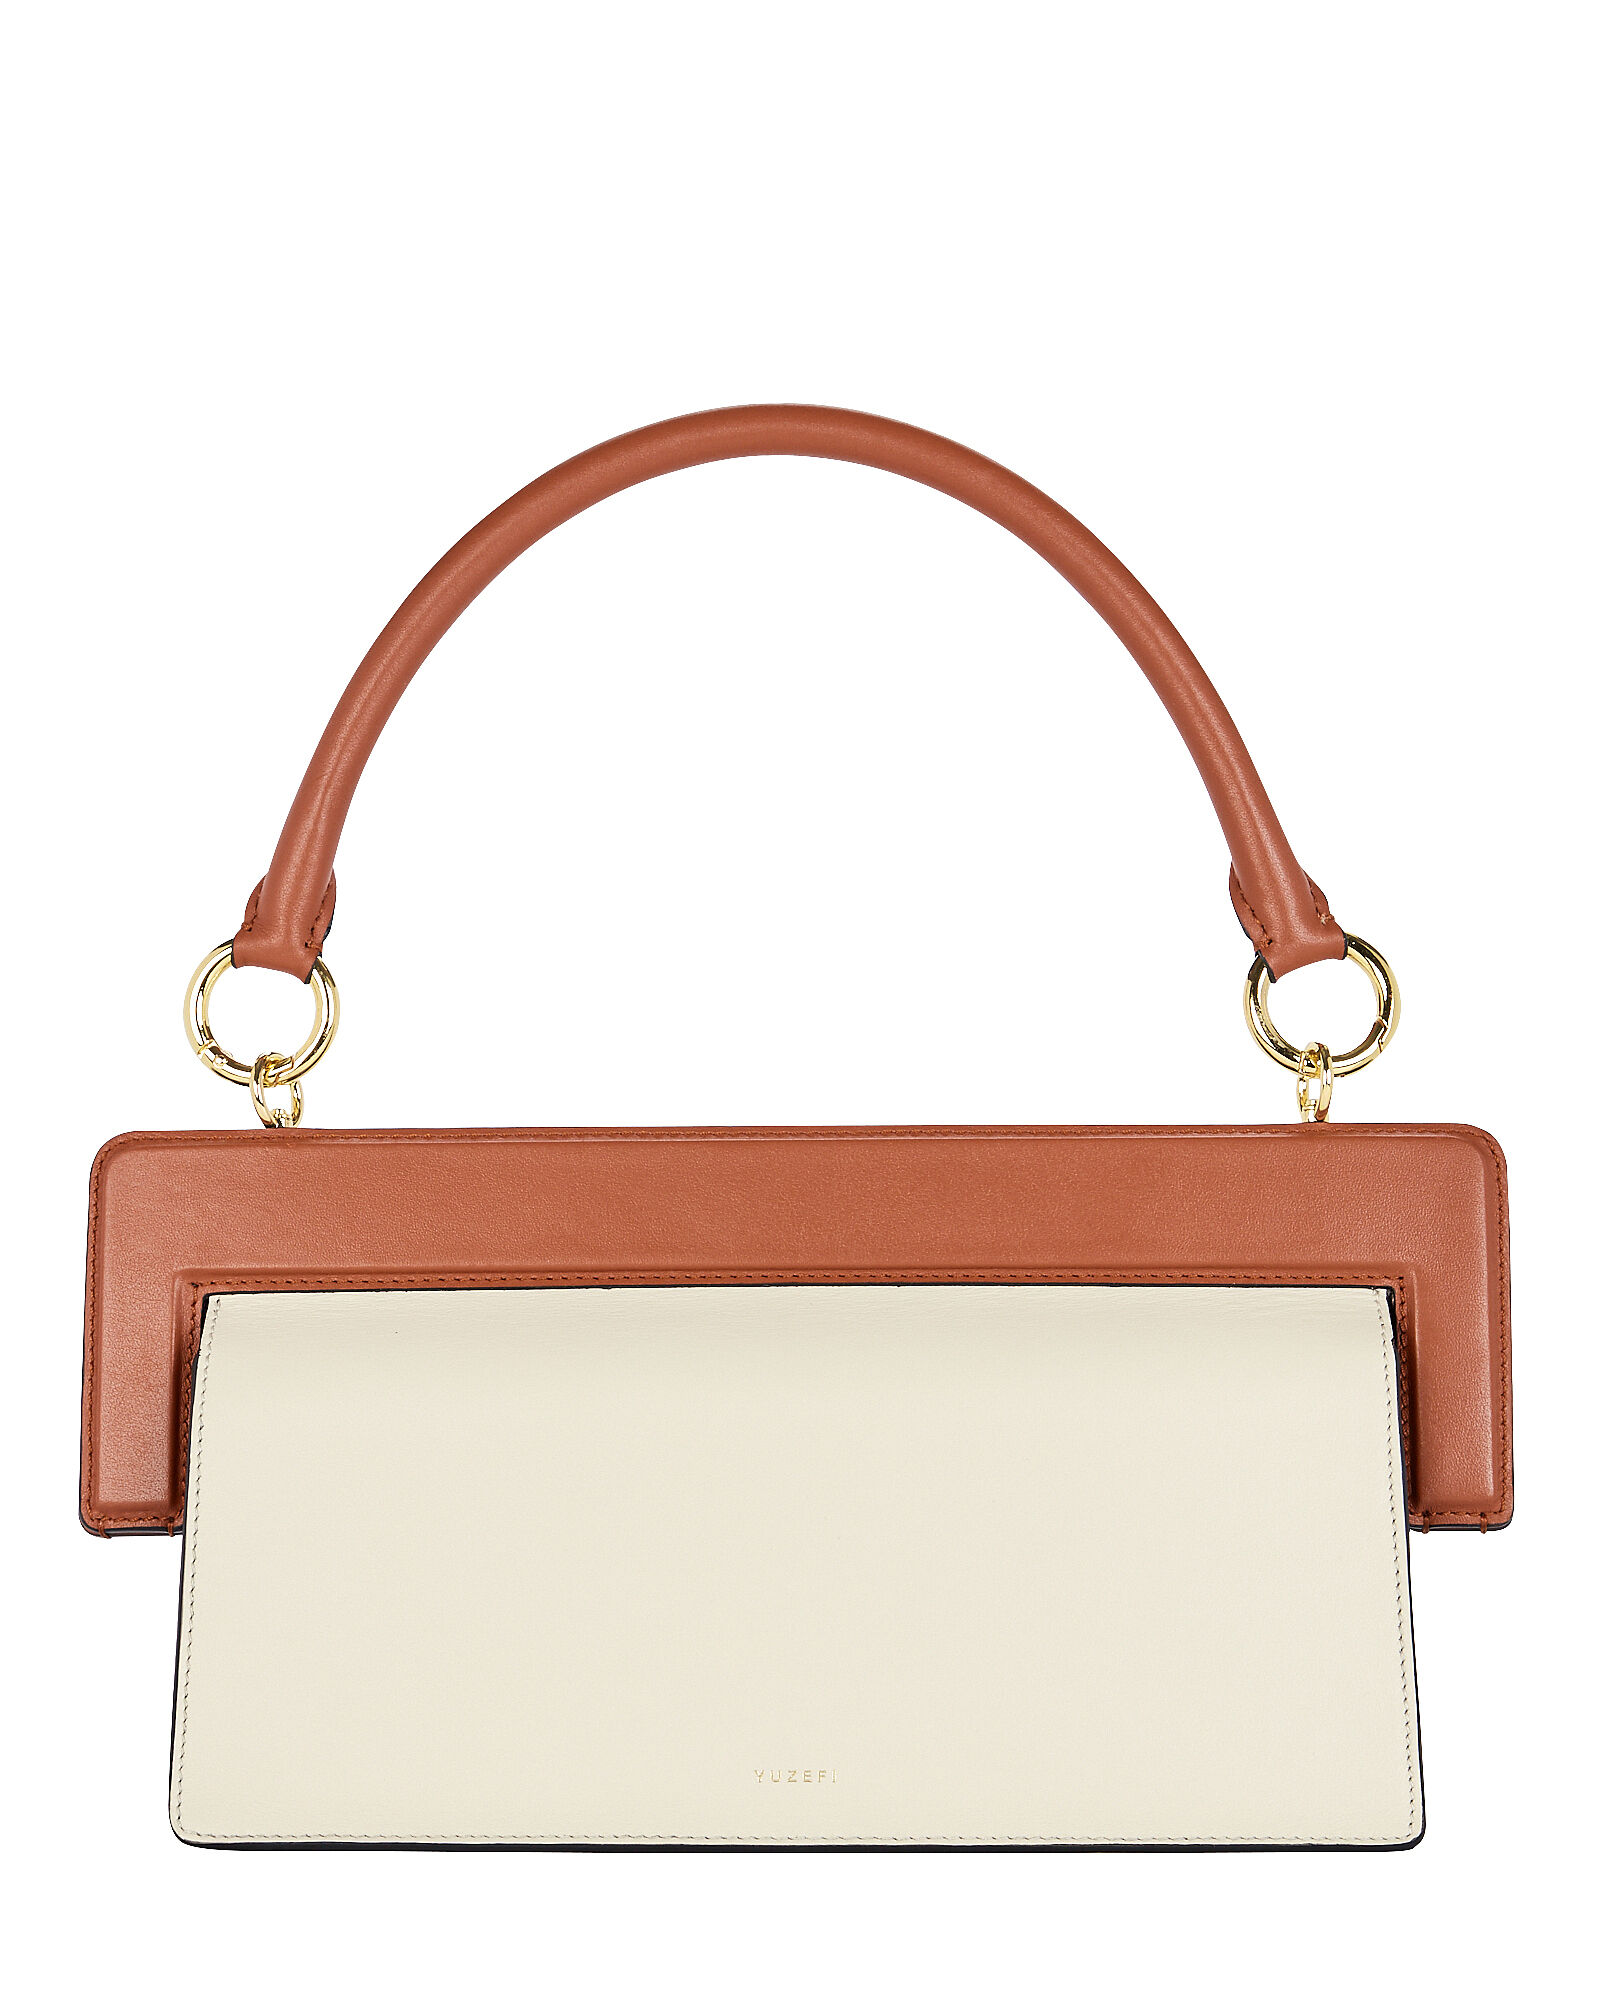 Ada Colorblock Leather Shoulder Bag, CAMEL/IVORY, hi-res